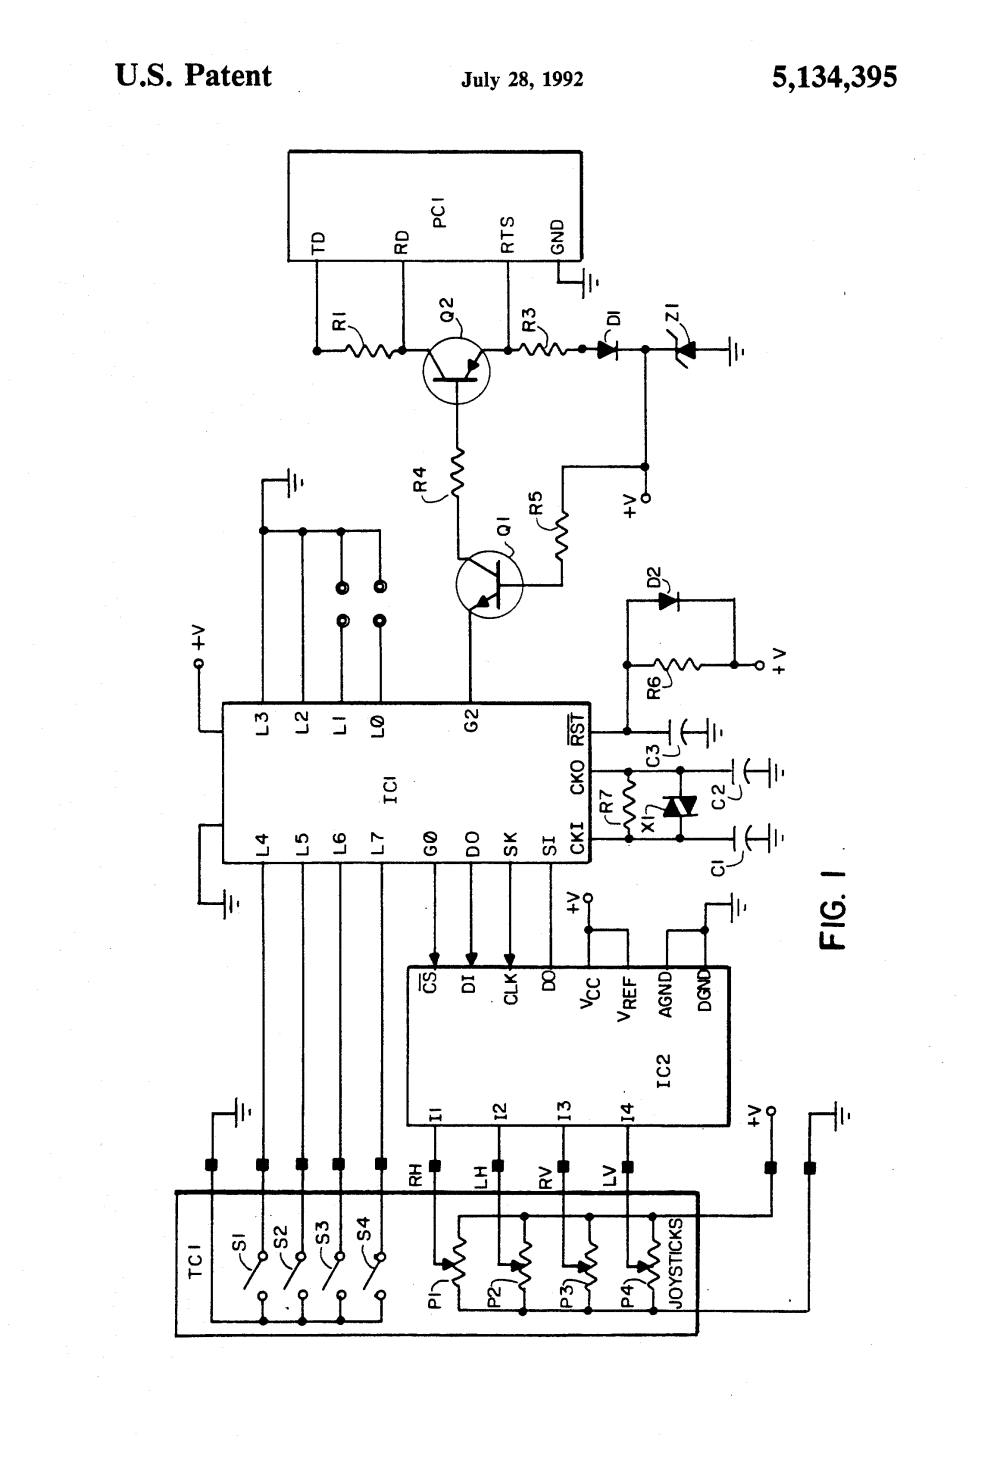 medium resolution of patent us5134395 joystick switch interface to computer joysticks connections diagram western plow solenoid wiring diagram